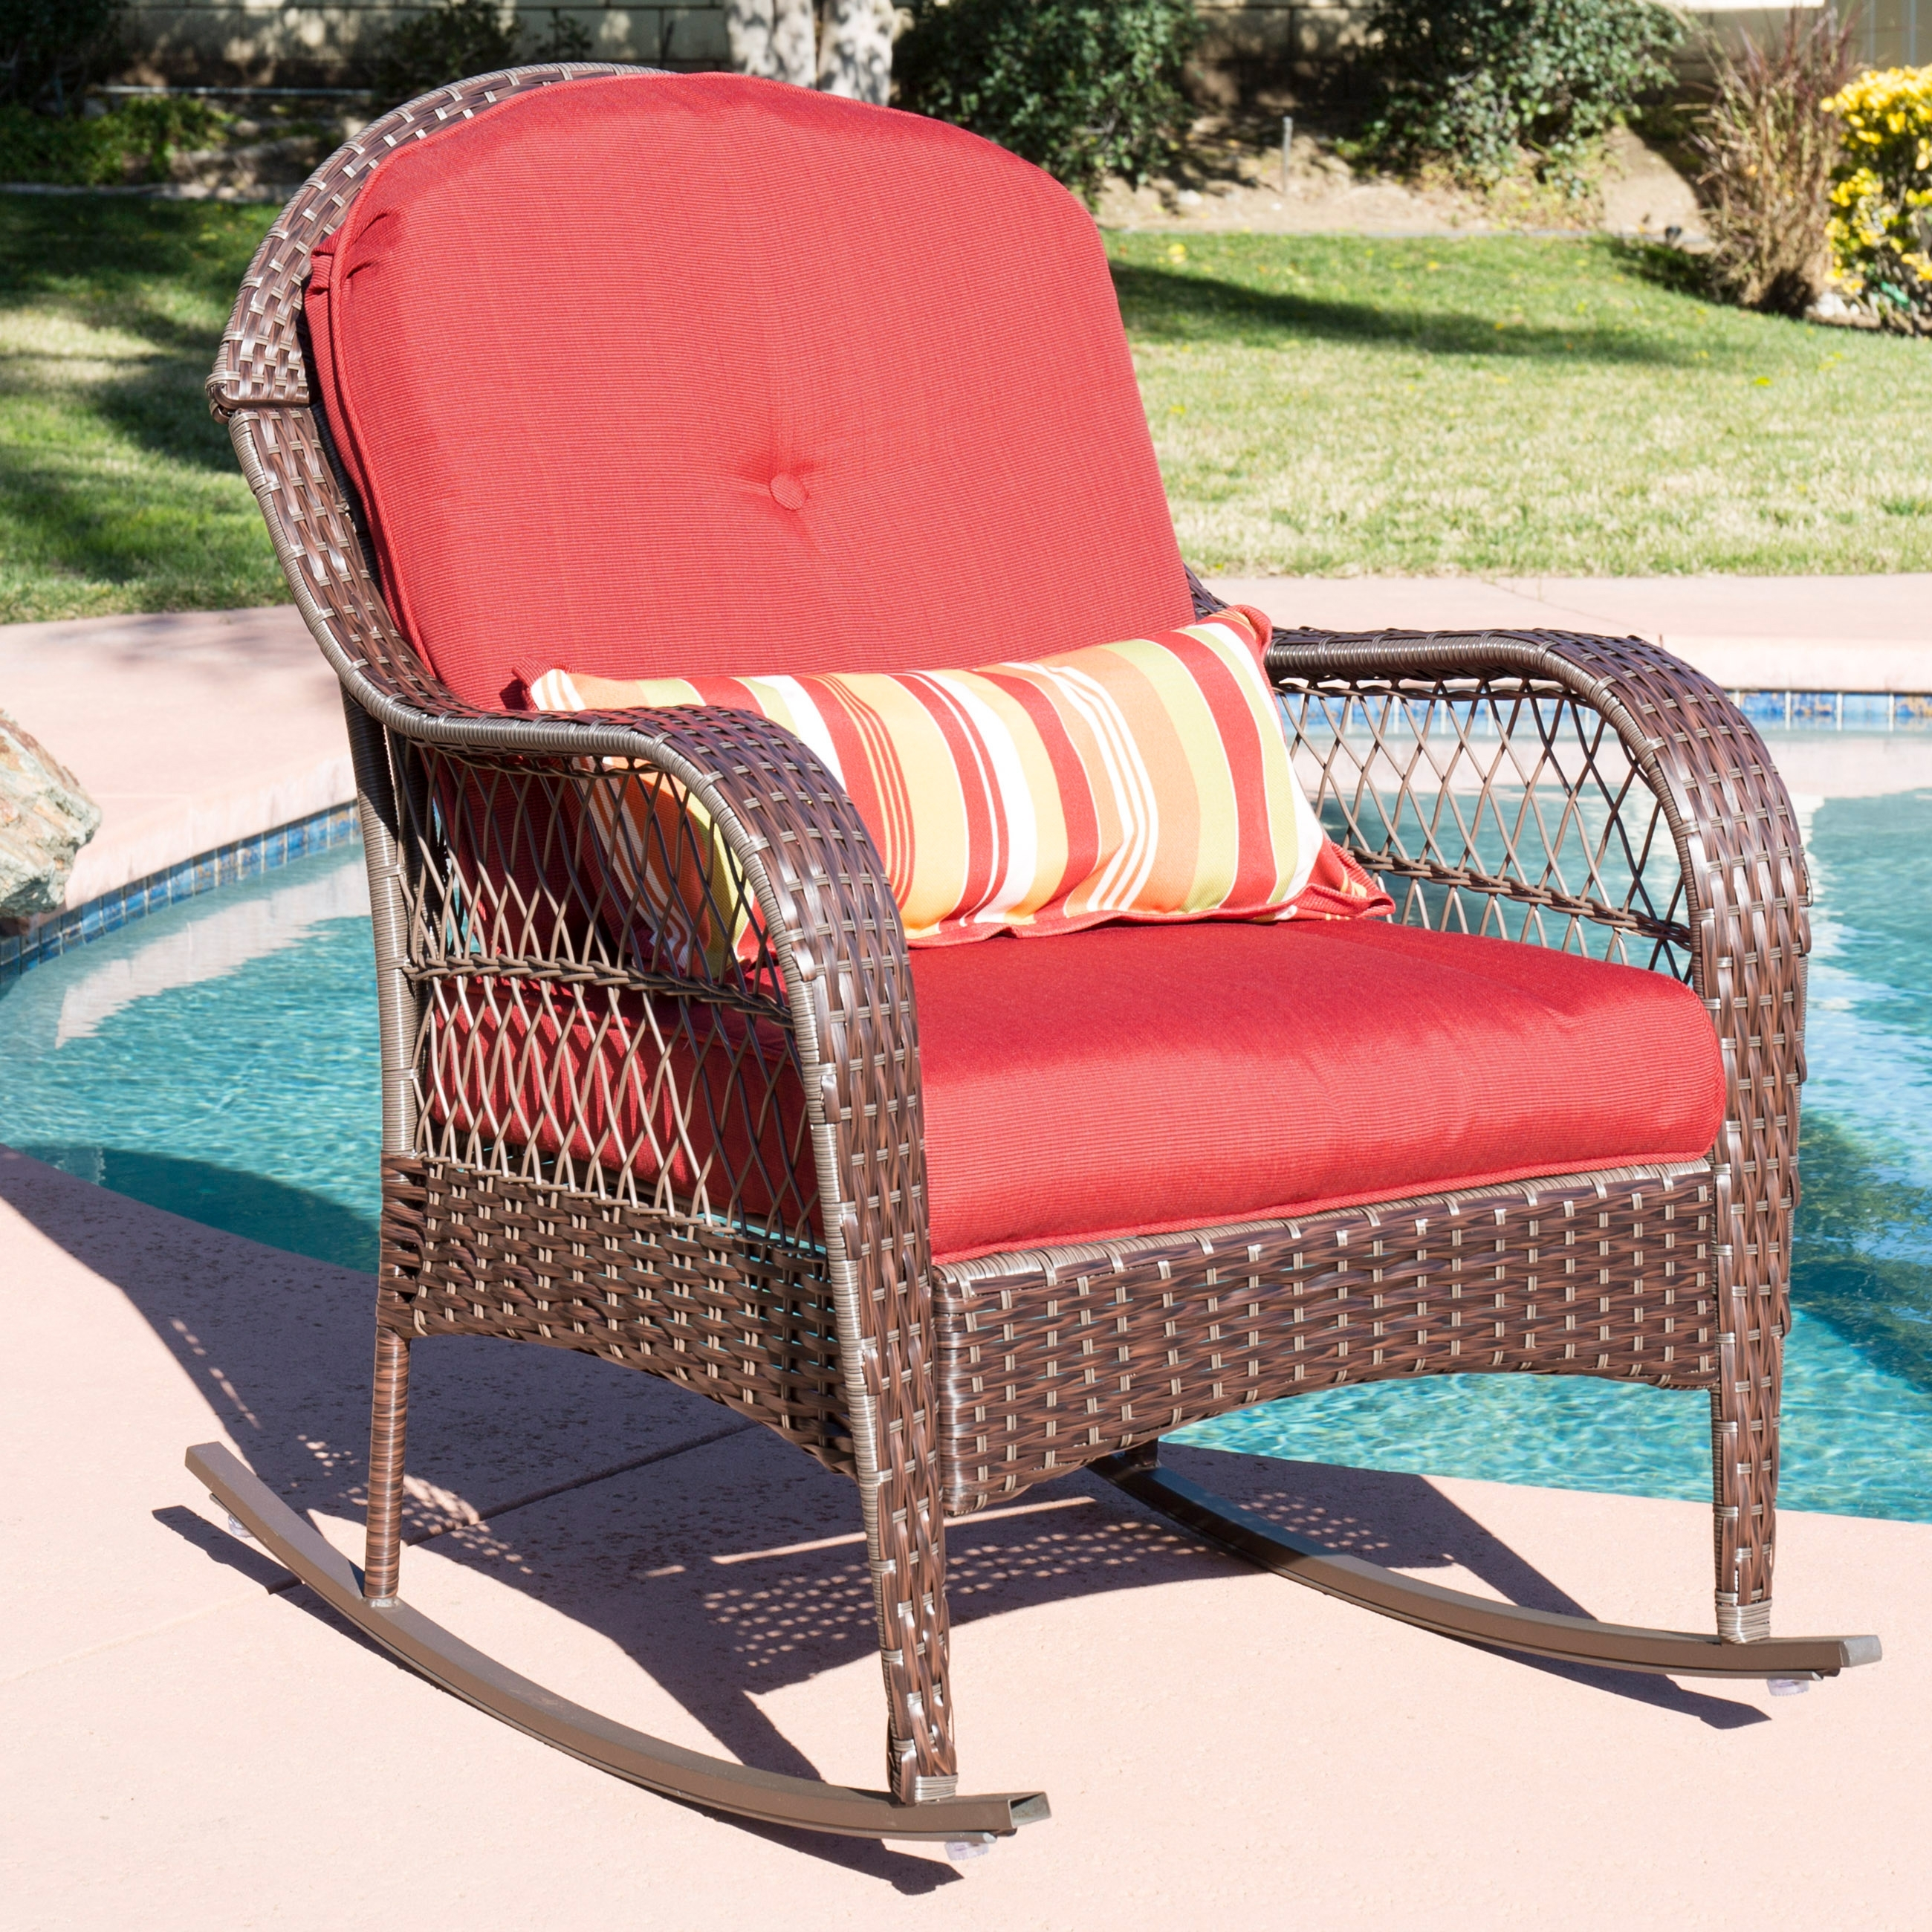 Most Recently Released Wicker Rocking Chairs With Cushions In Best Choice Products Wicker Rocking Chair Patio Porch Deck Furniture (View 7 of 20)